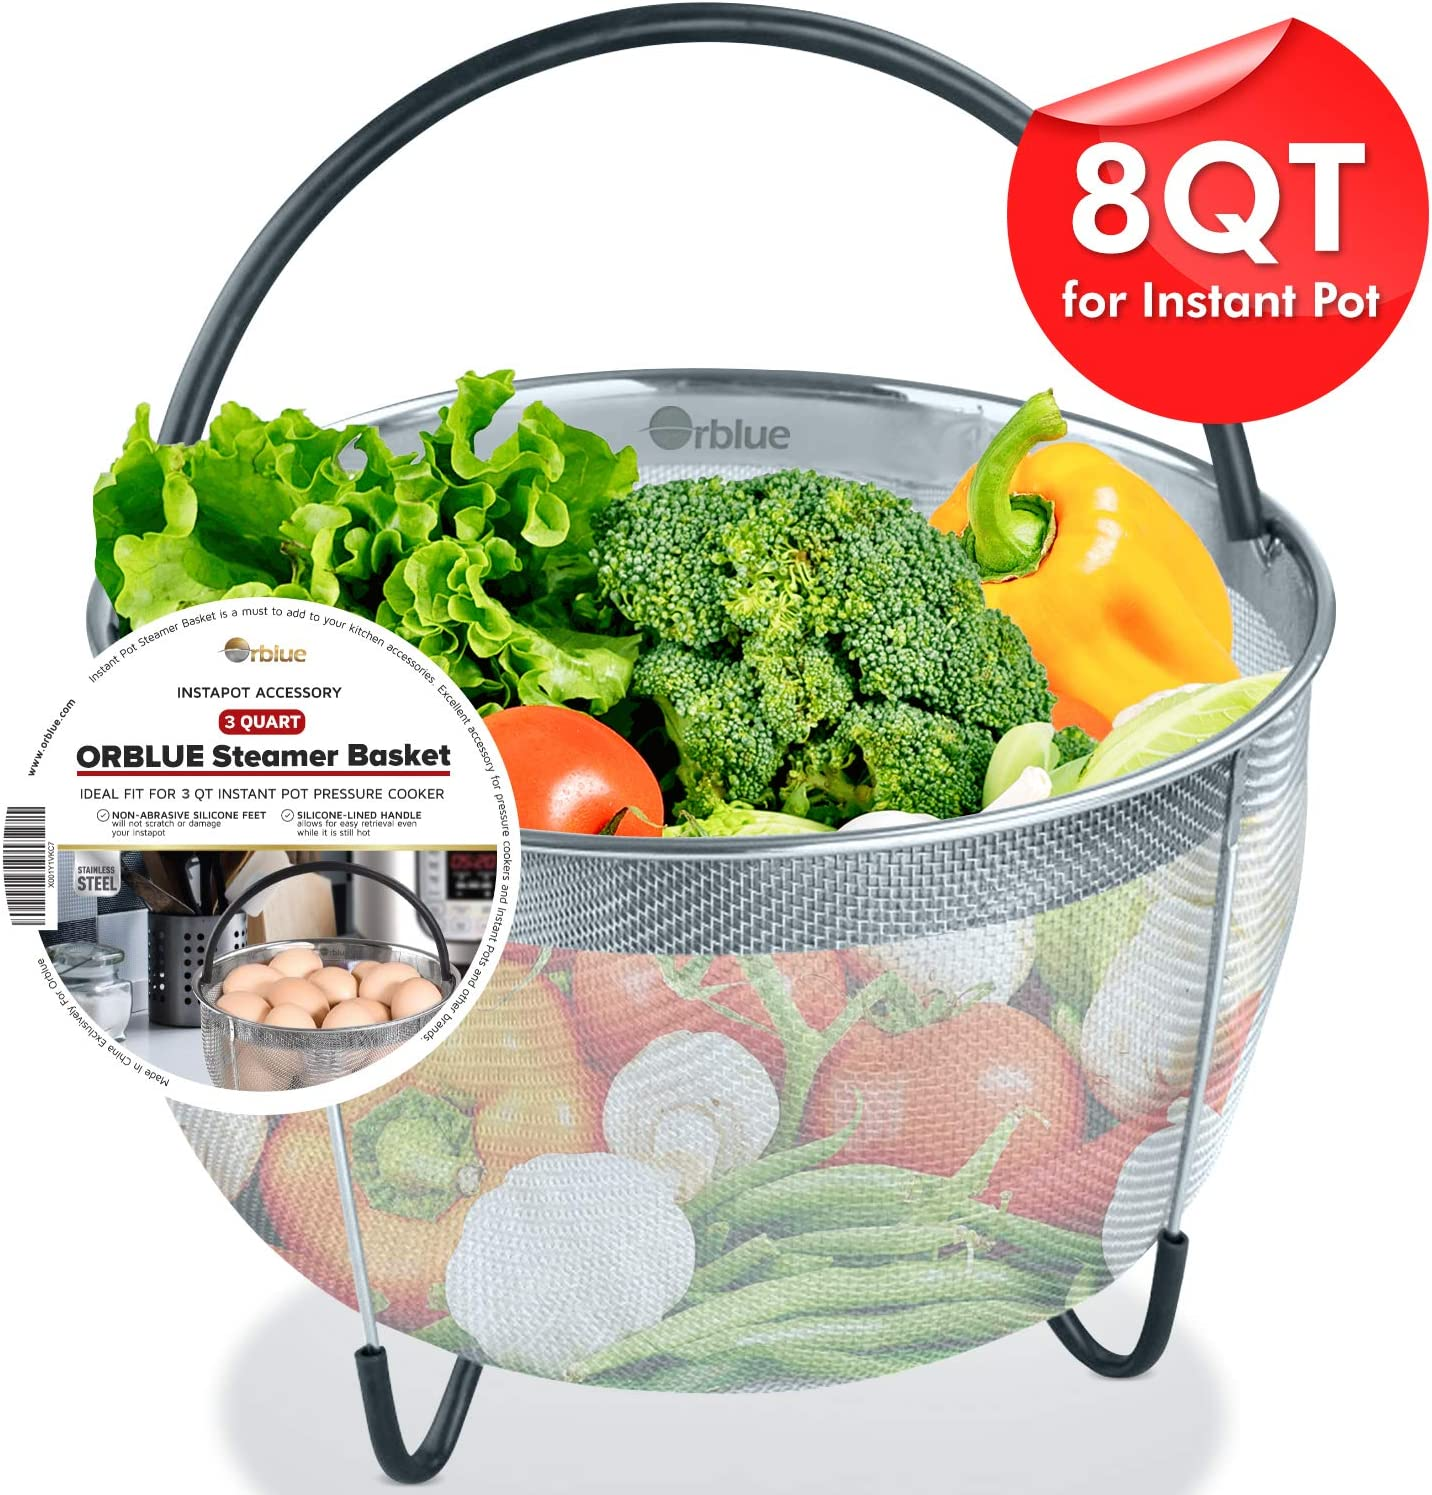 Silicone Vegetable Steamer Basket For Instant Pot Electric Pressure Cooker Non-scratch Veggies Steamer Insert Instant Pot Must-have Accessory